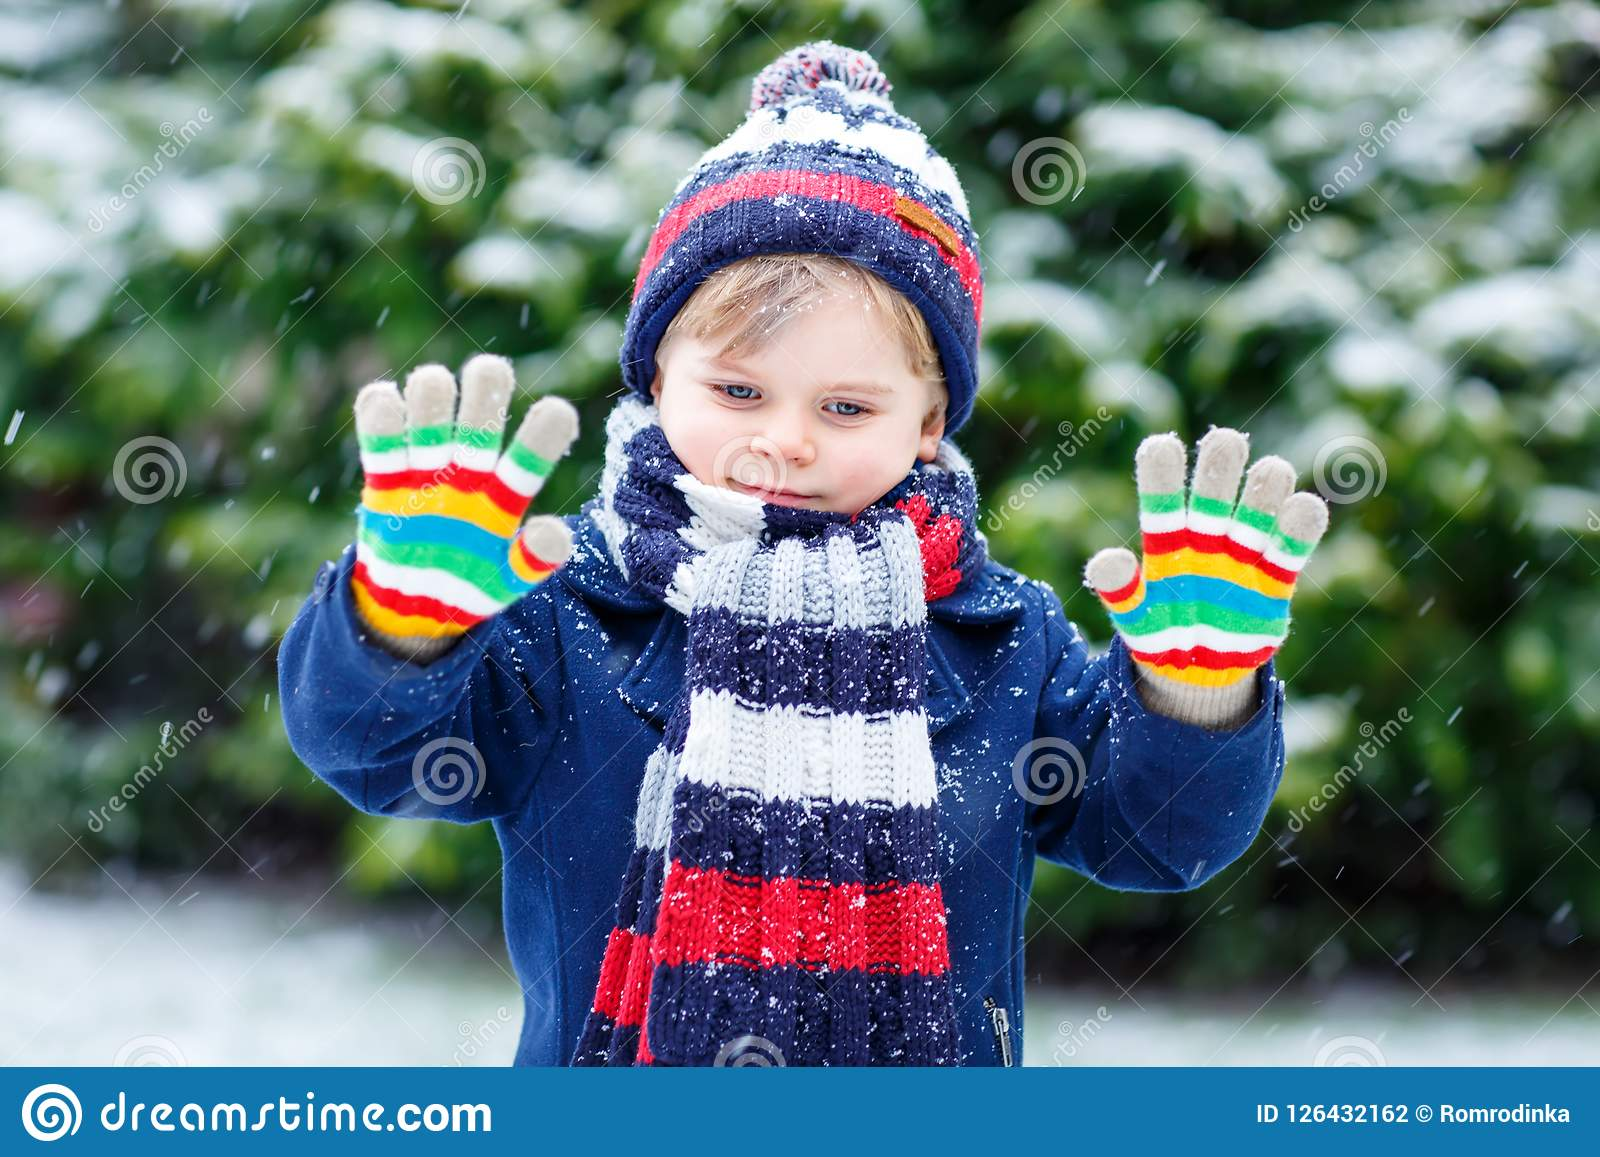 cute-little-funny-child-colorful-winter-fashion-clothes-having-fun-playing- snow-outdoors-snowfall-active-126432162.jpg d8c85dc1c